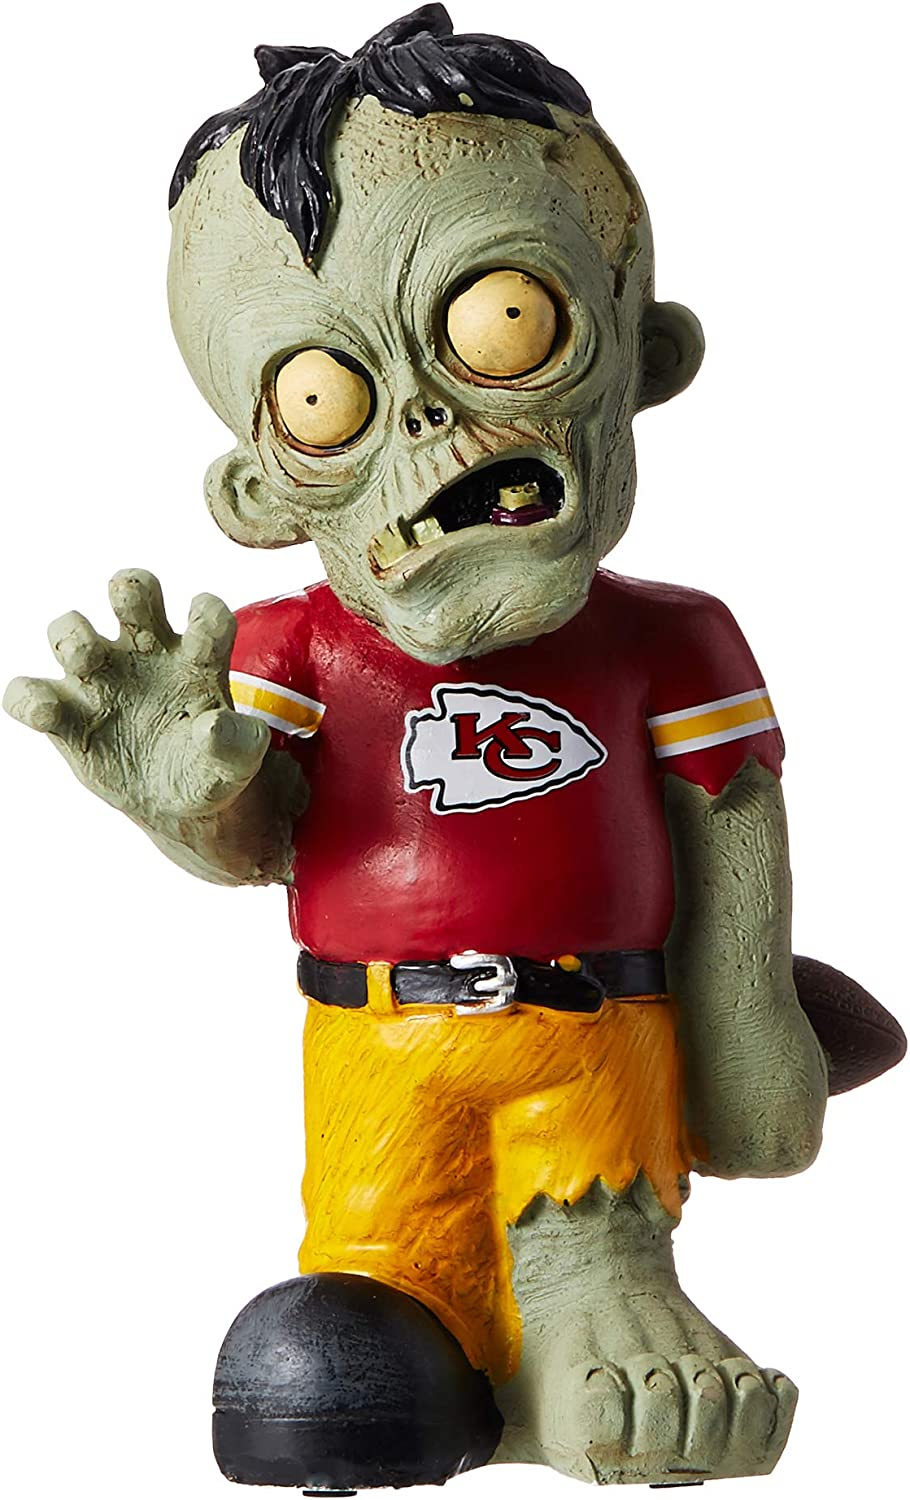 Baltimore Ravens Resin Thematic Zombie Figurine Clothing